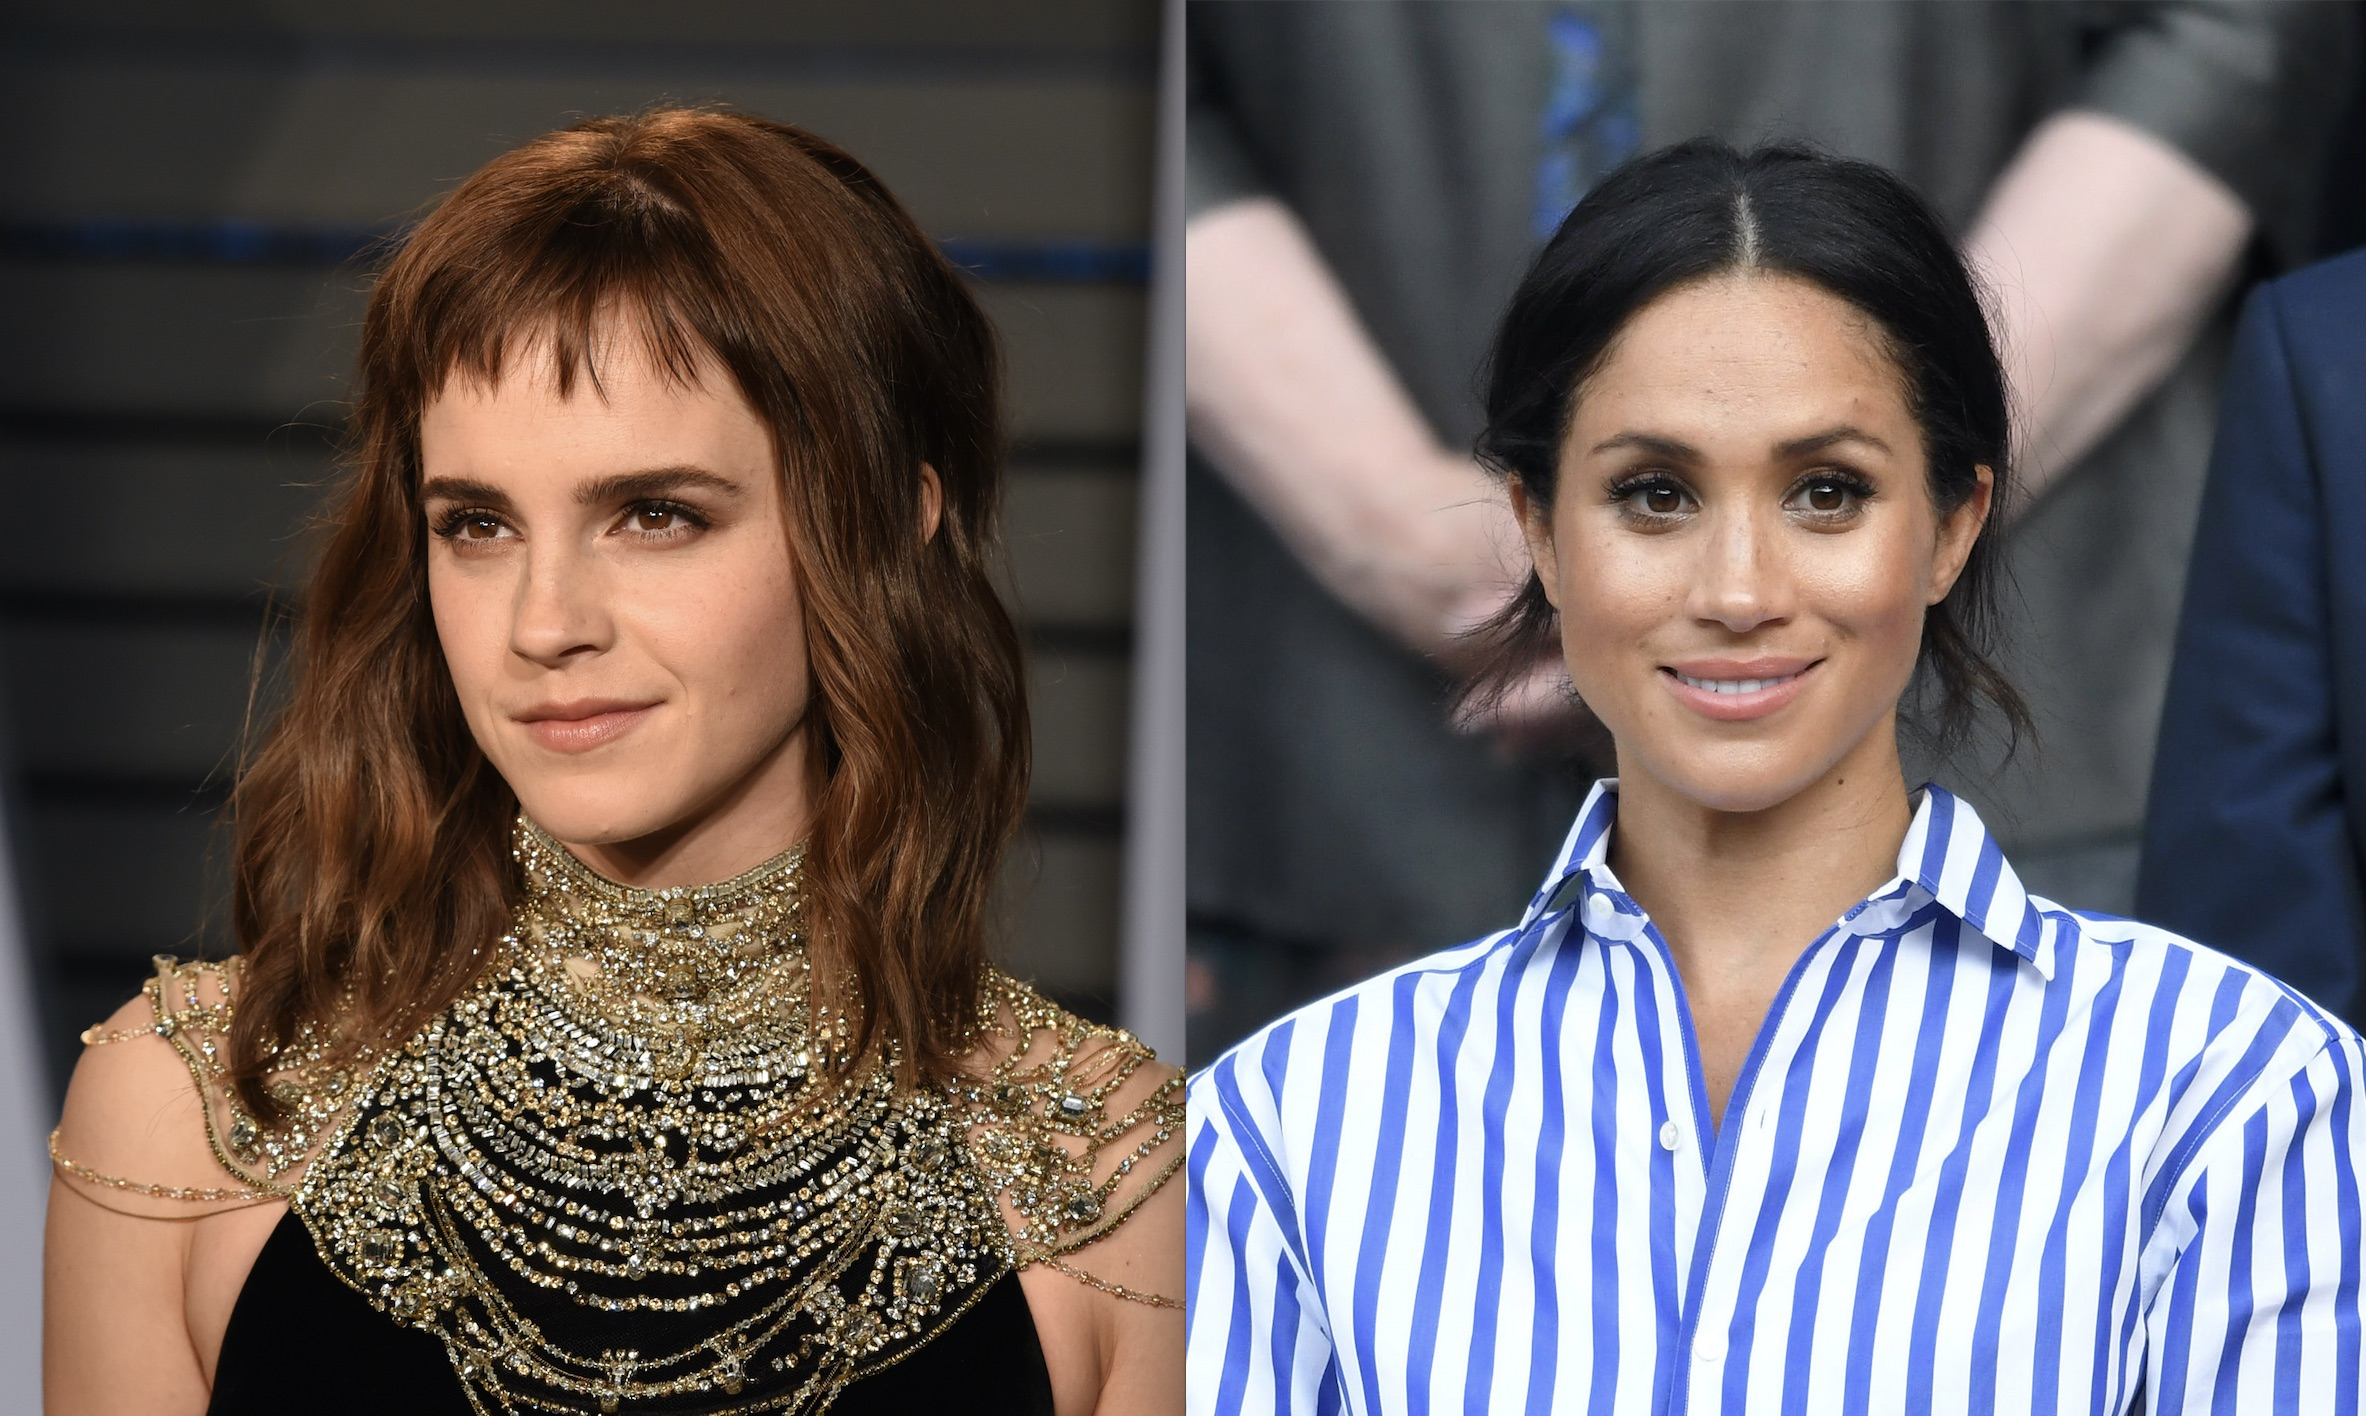 Emma Watson and Meghan Markle twinned yet again in these chic nude dresses